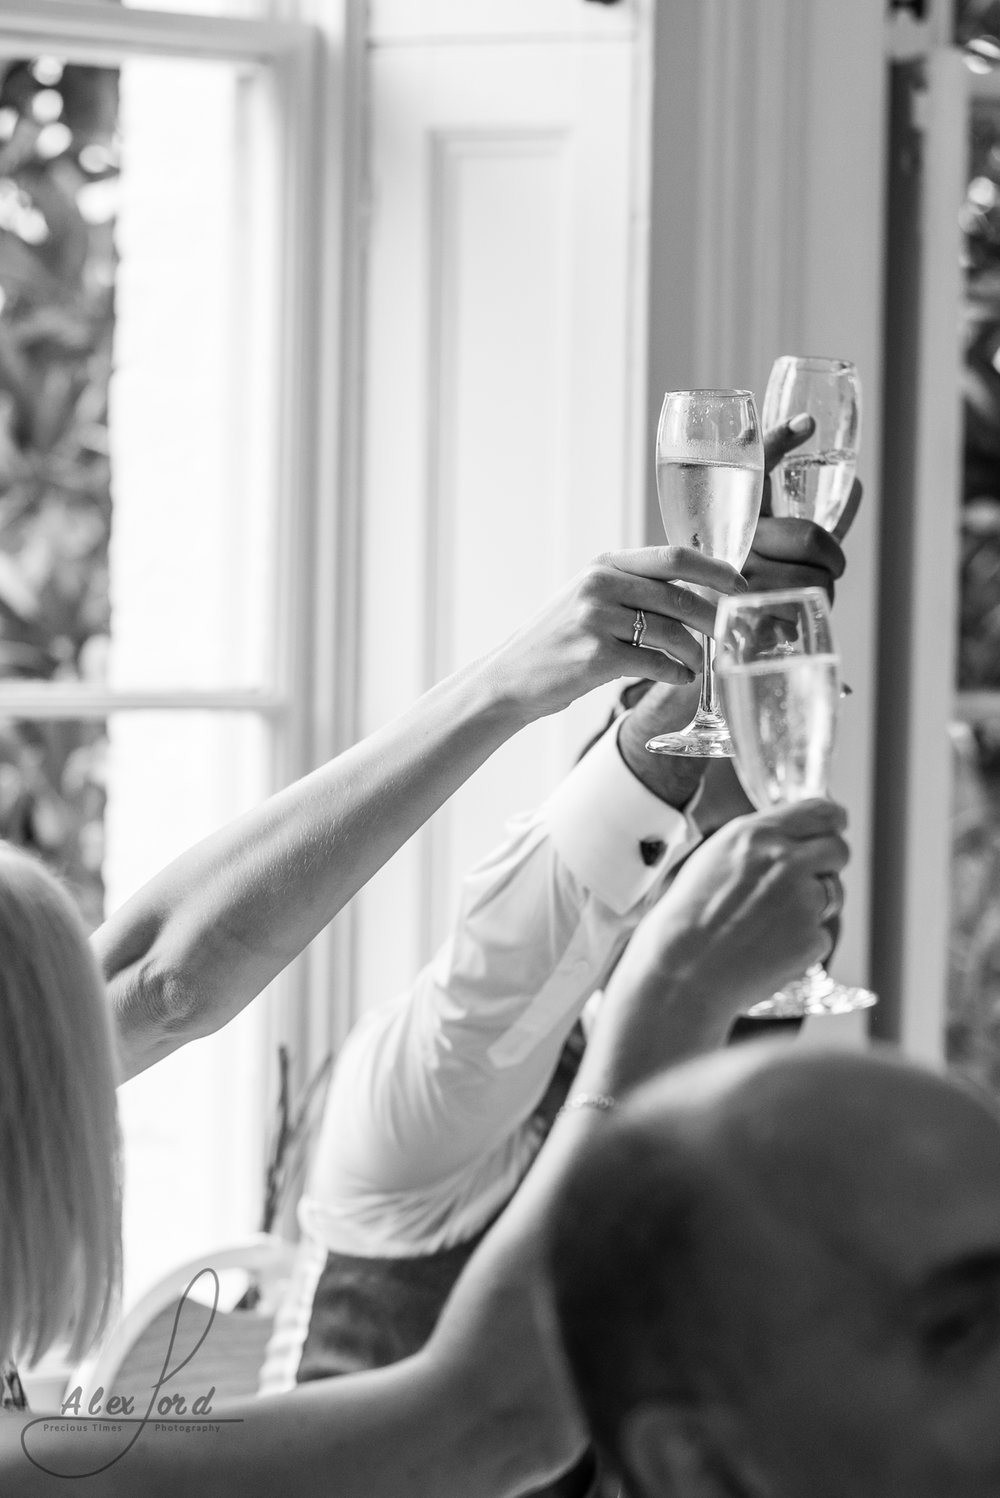 Three members of the wedding party holding up champagne glasses for a toast during the wedding breakfast speeches